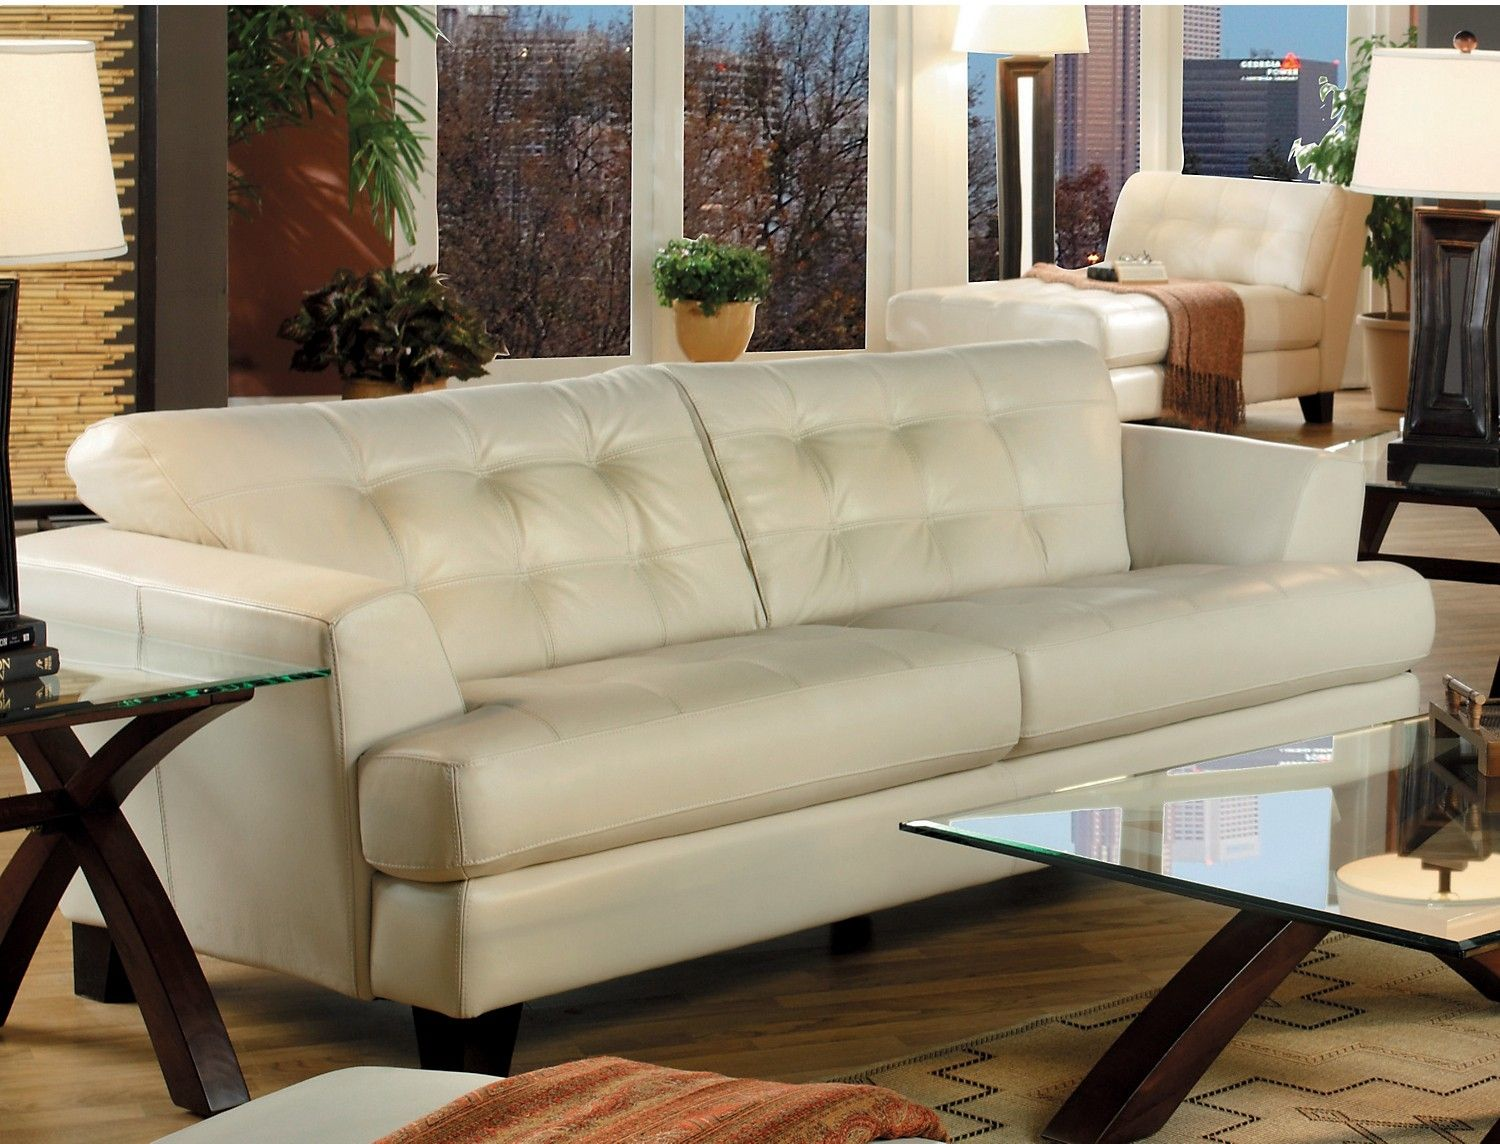 Sofa The Brick Inspiration Main Flooravenue Genuine Leather Sofa  Ivory  The Brick  Home . Inspiration Design